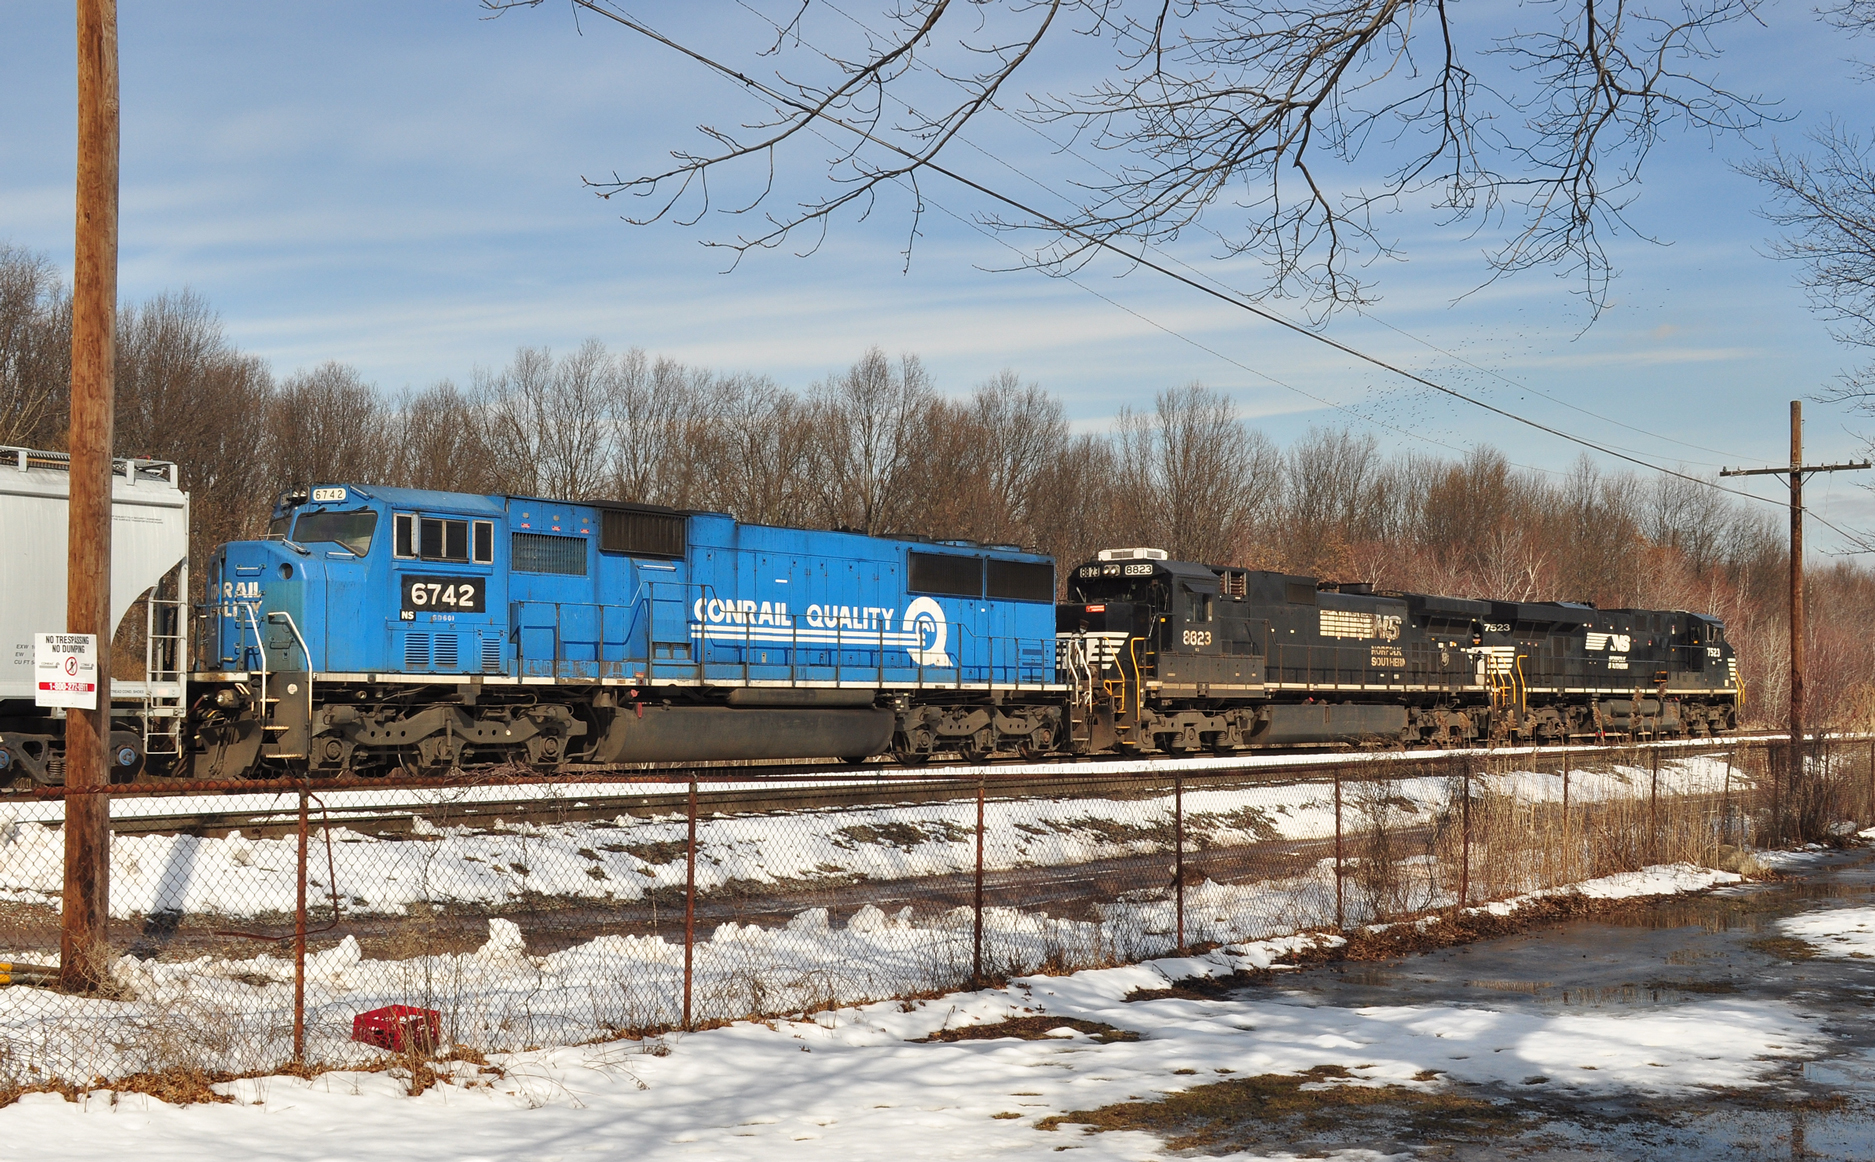 Rare Conrail blue grabs attention outside Port Reading yard